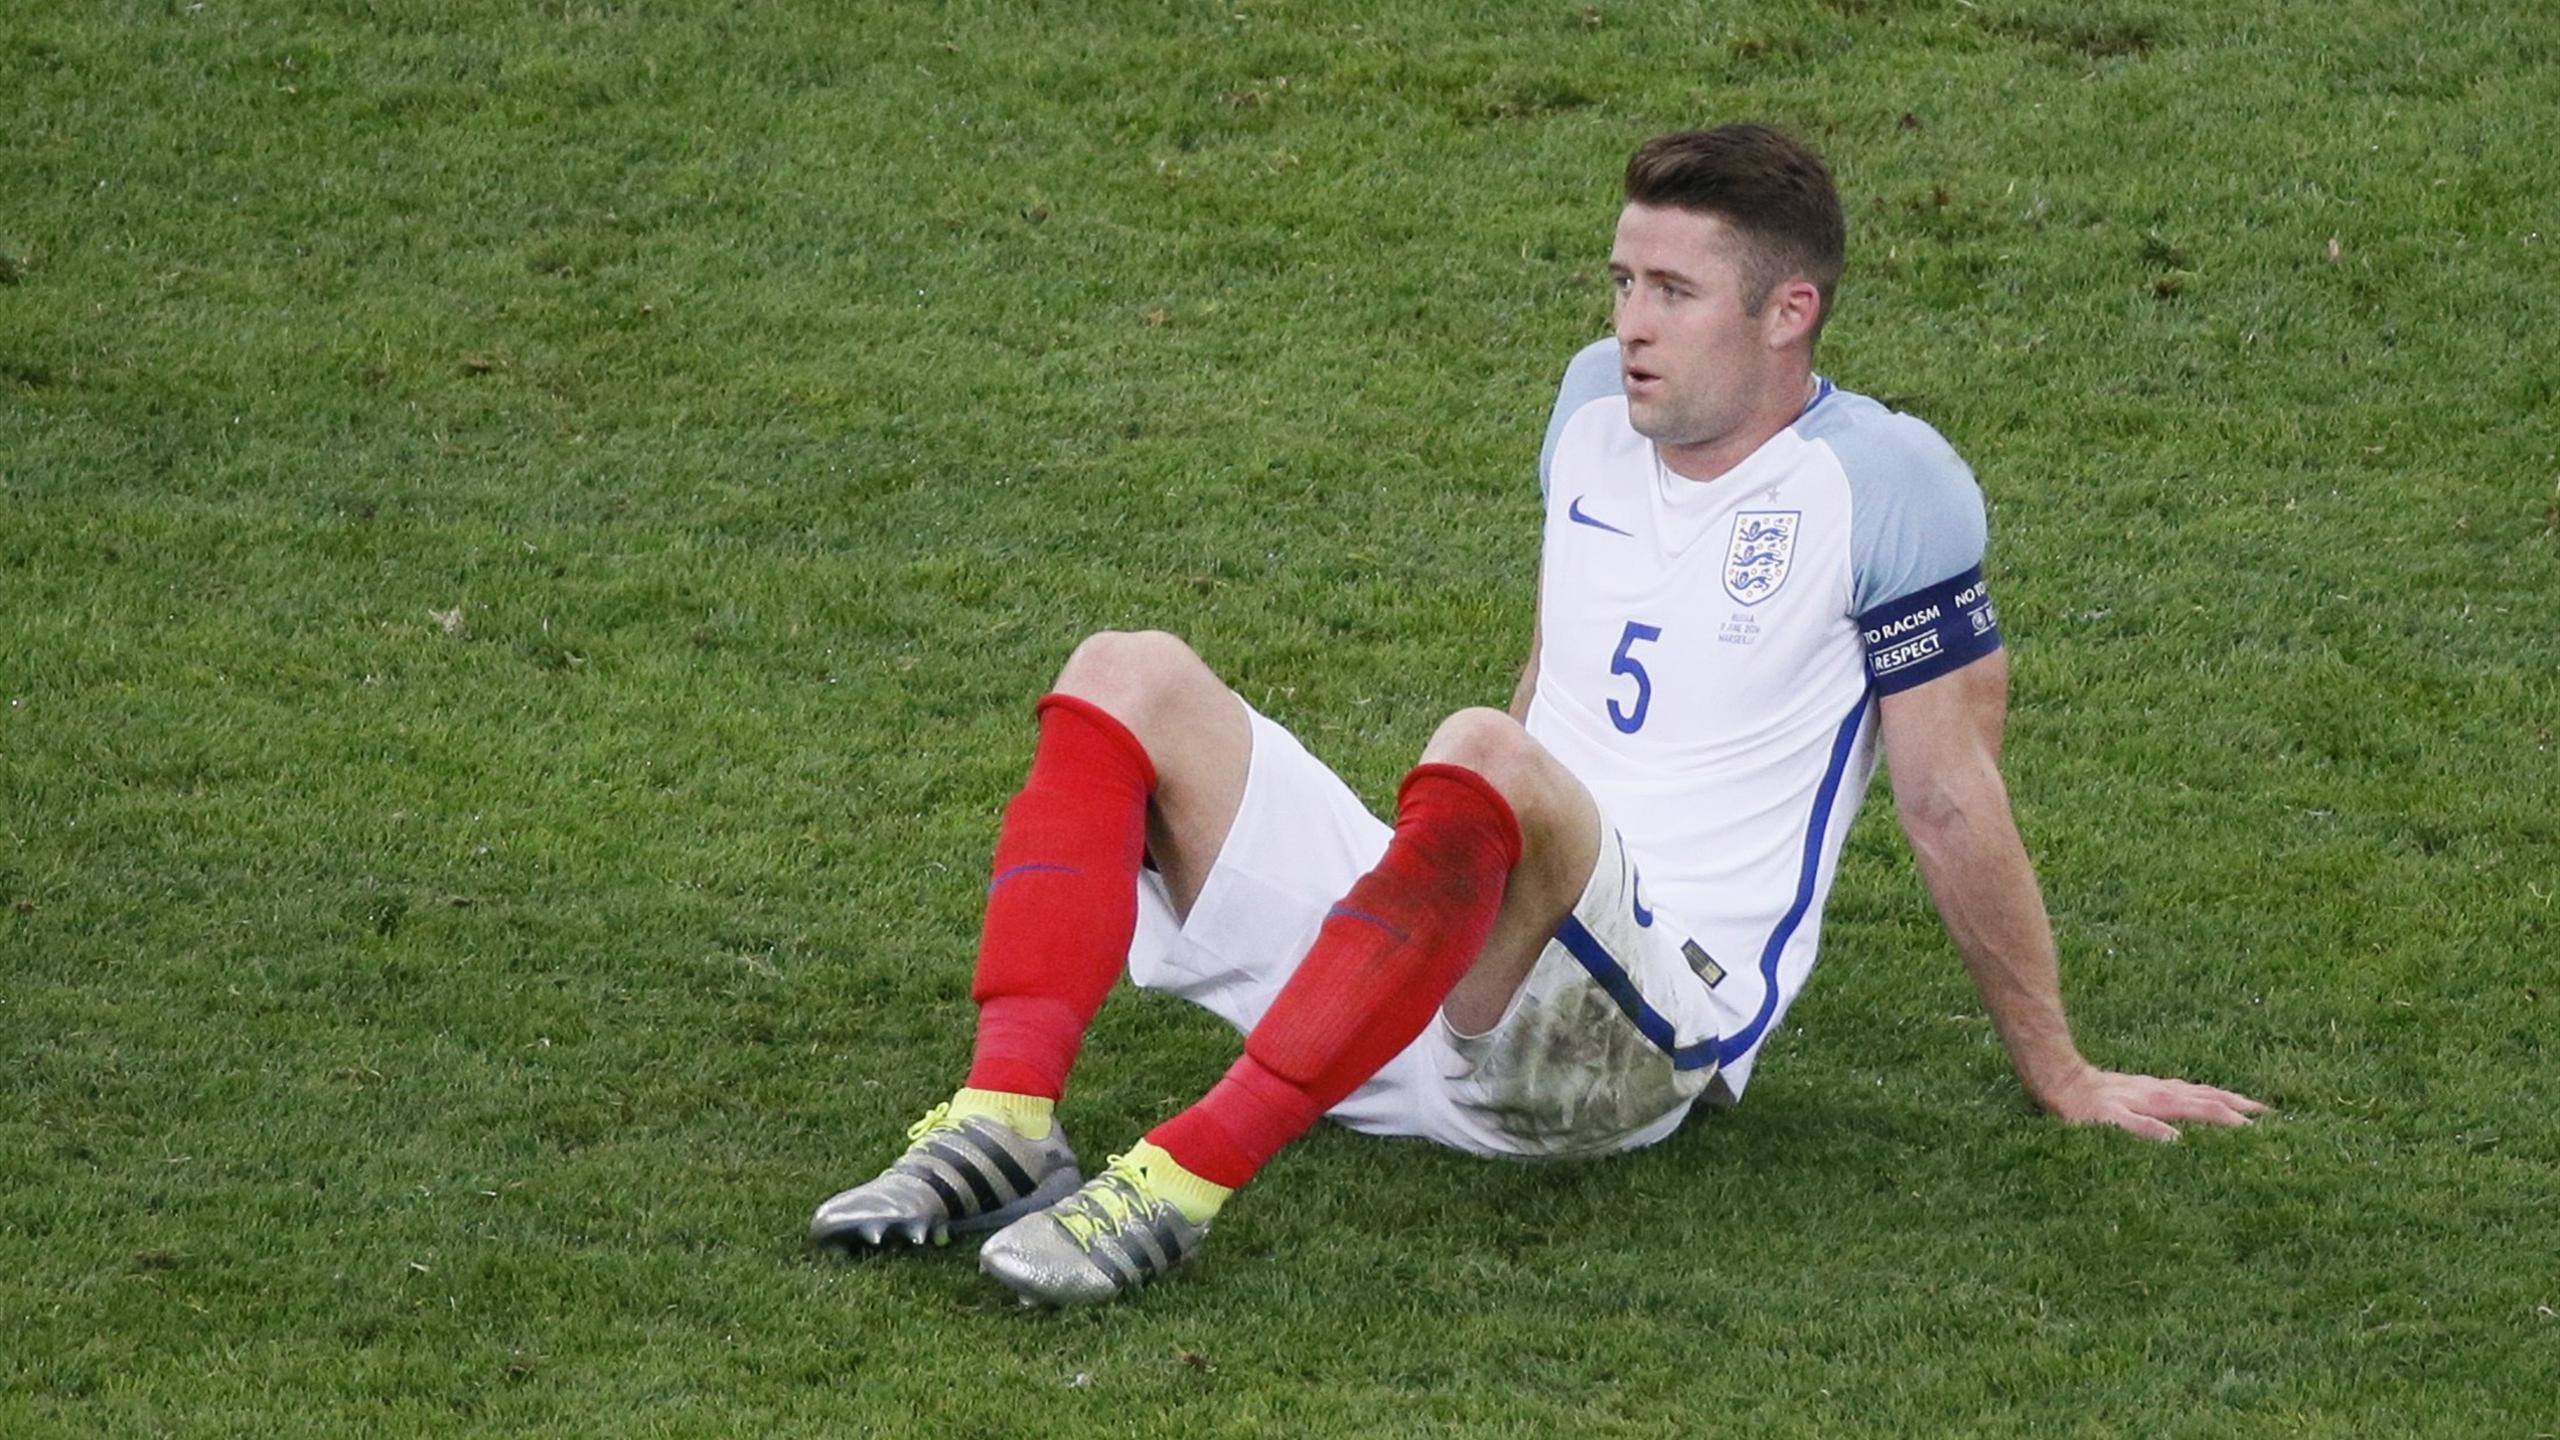 England's Gary Cahill reacts after the match.